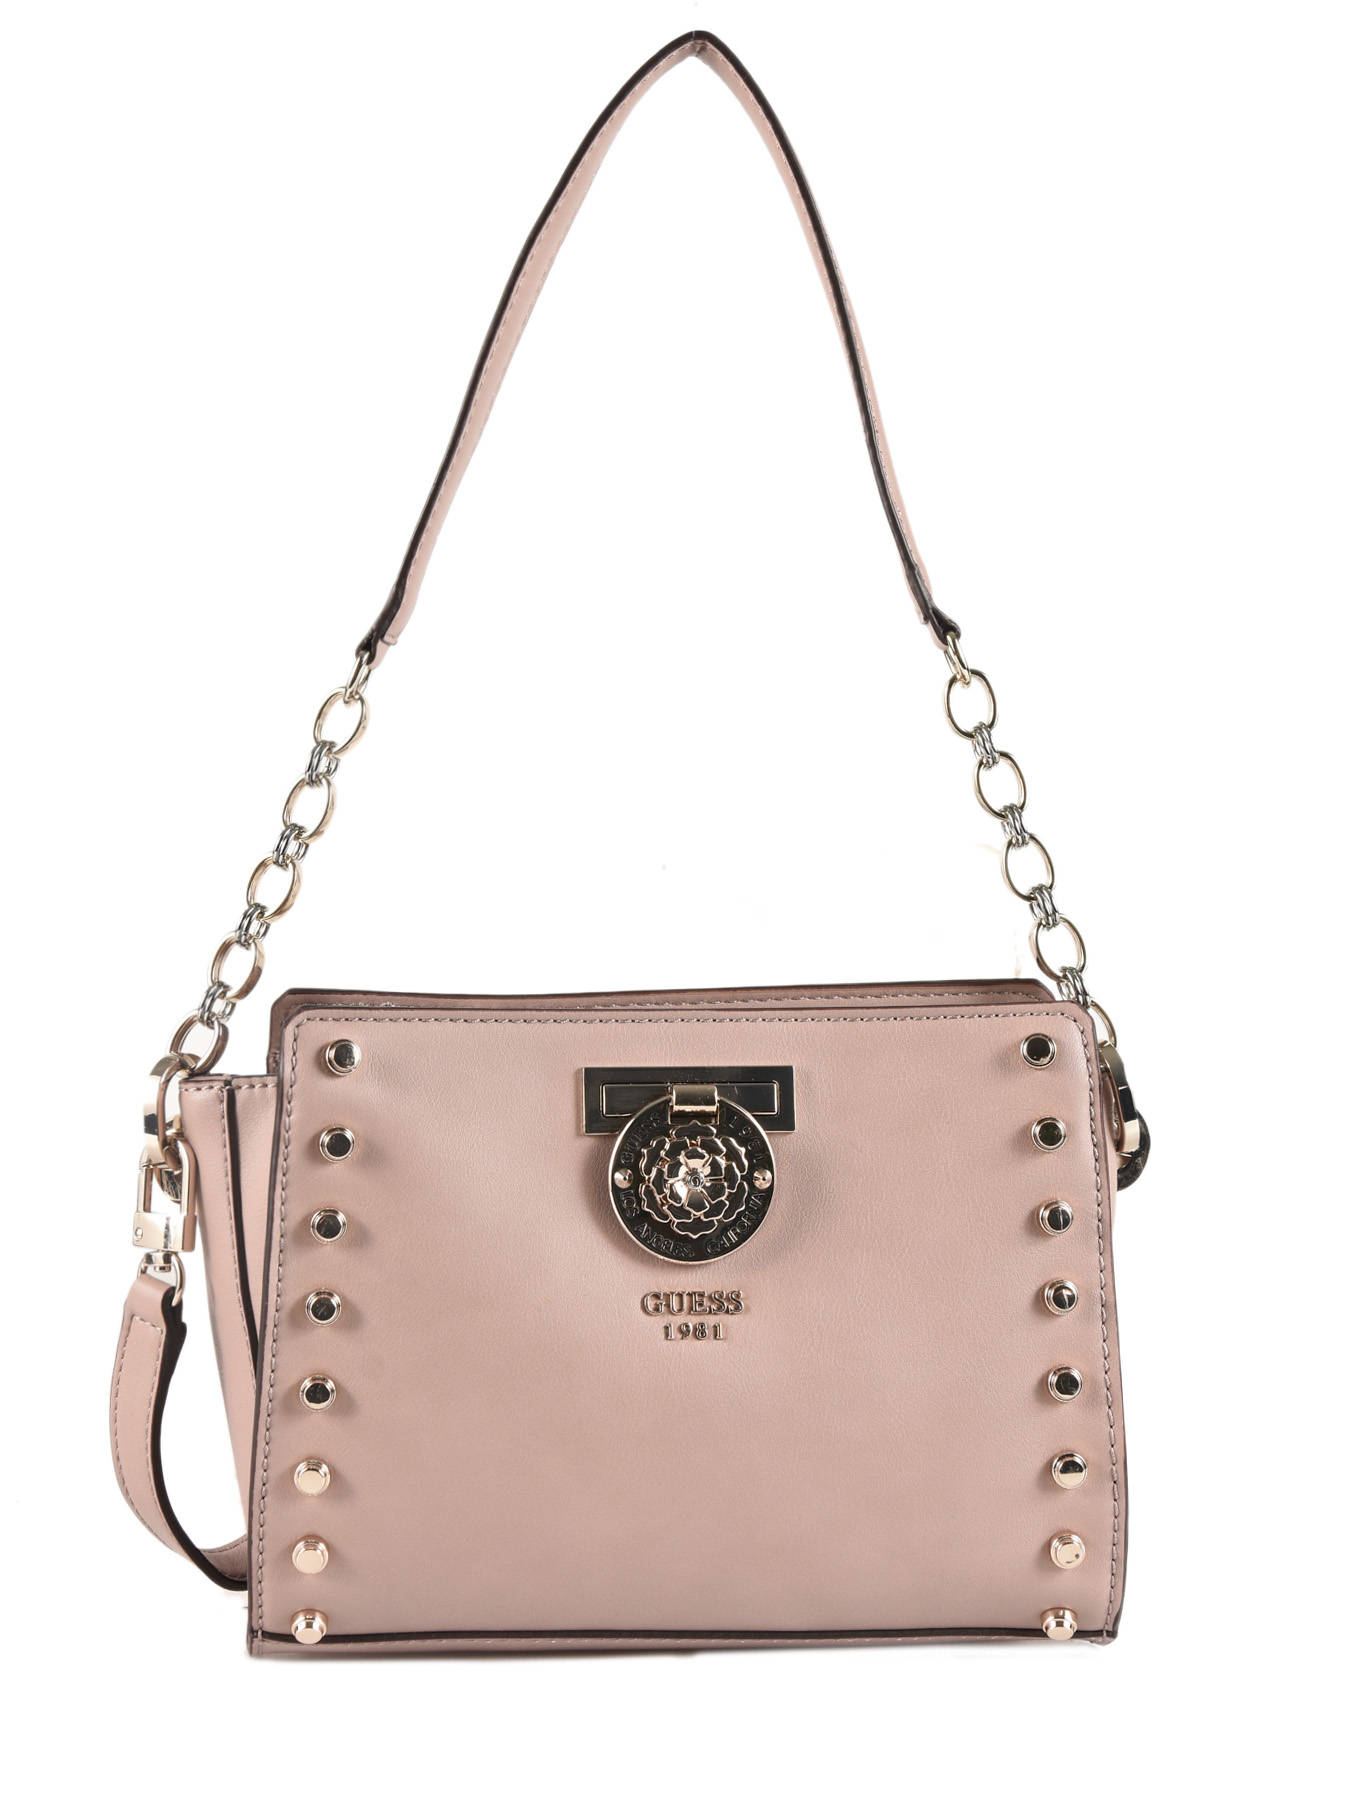 abee6f995a54 ... Shoulder Bag Marlene Guess Gray marlene VG717714 ...